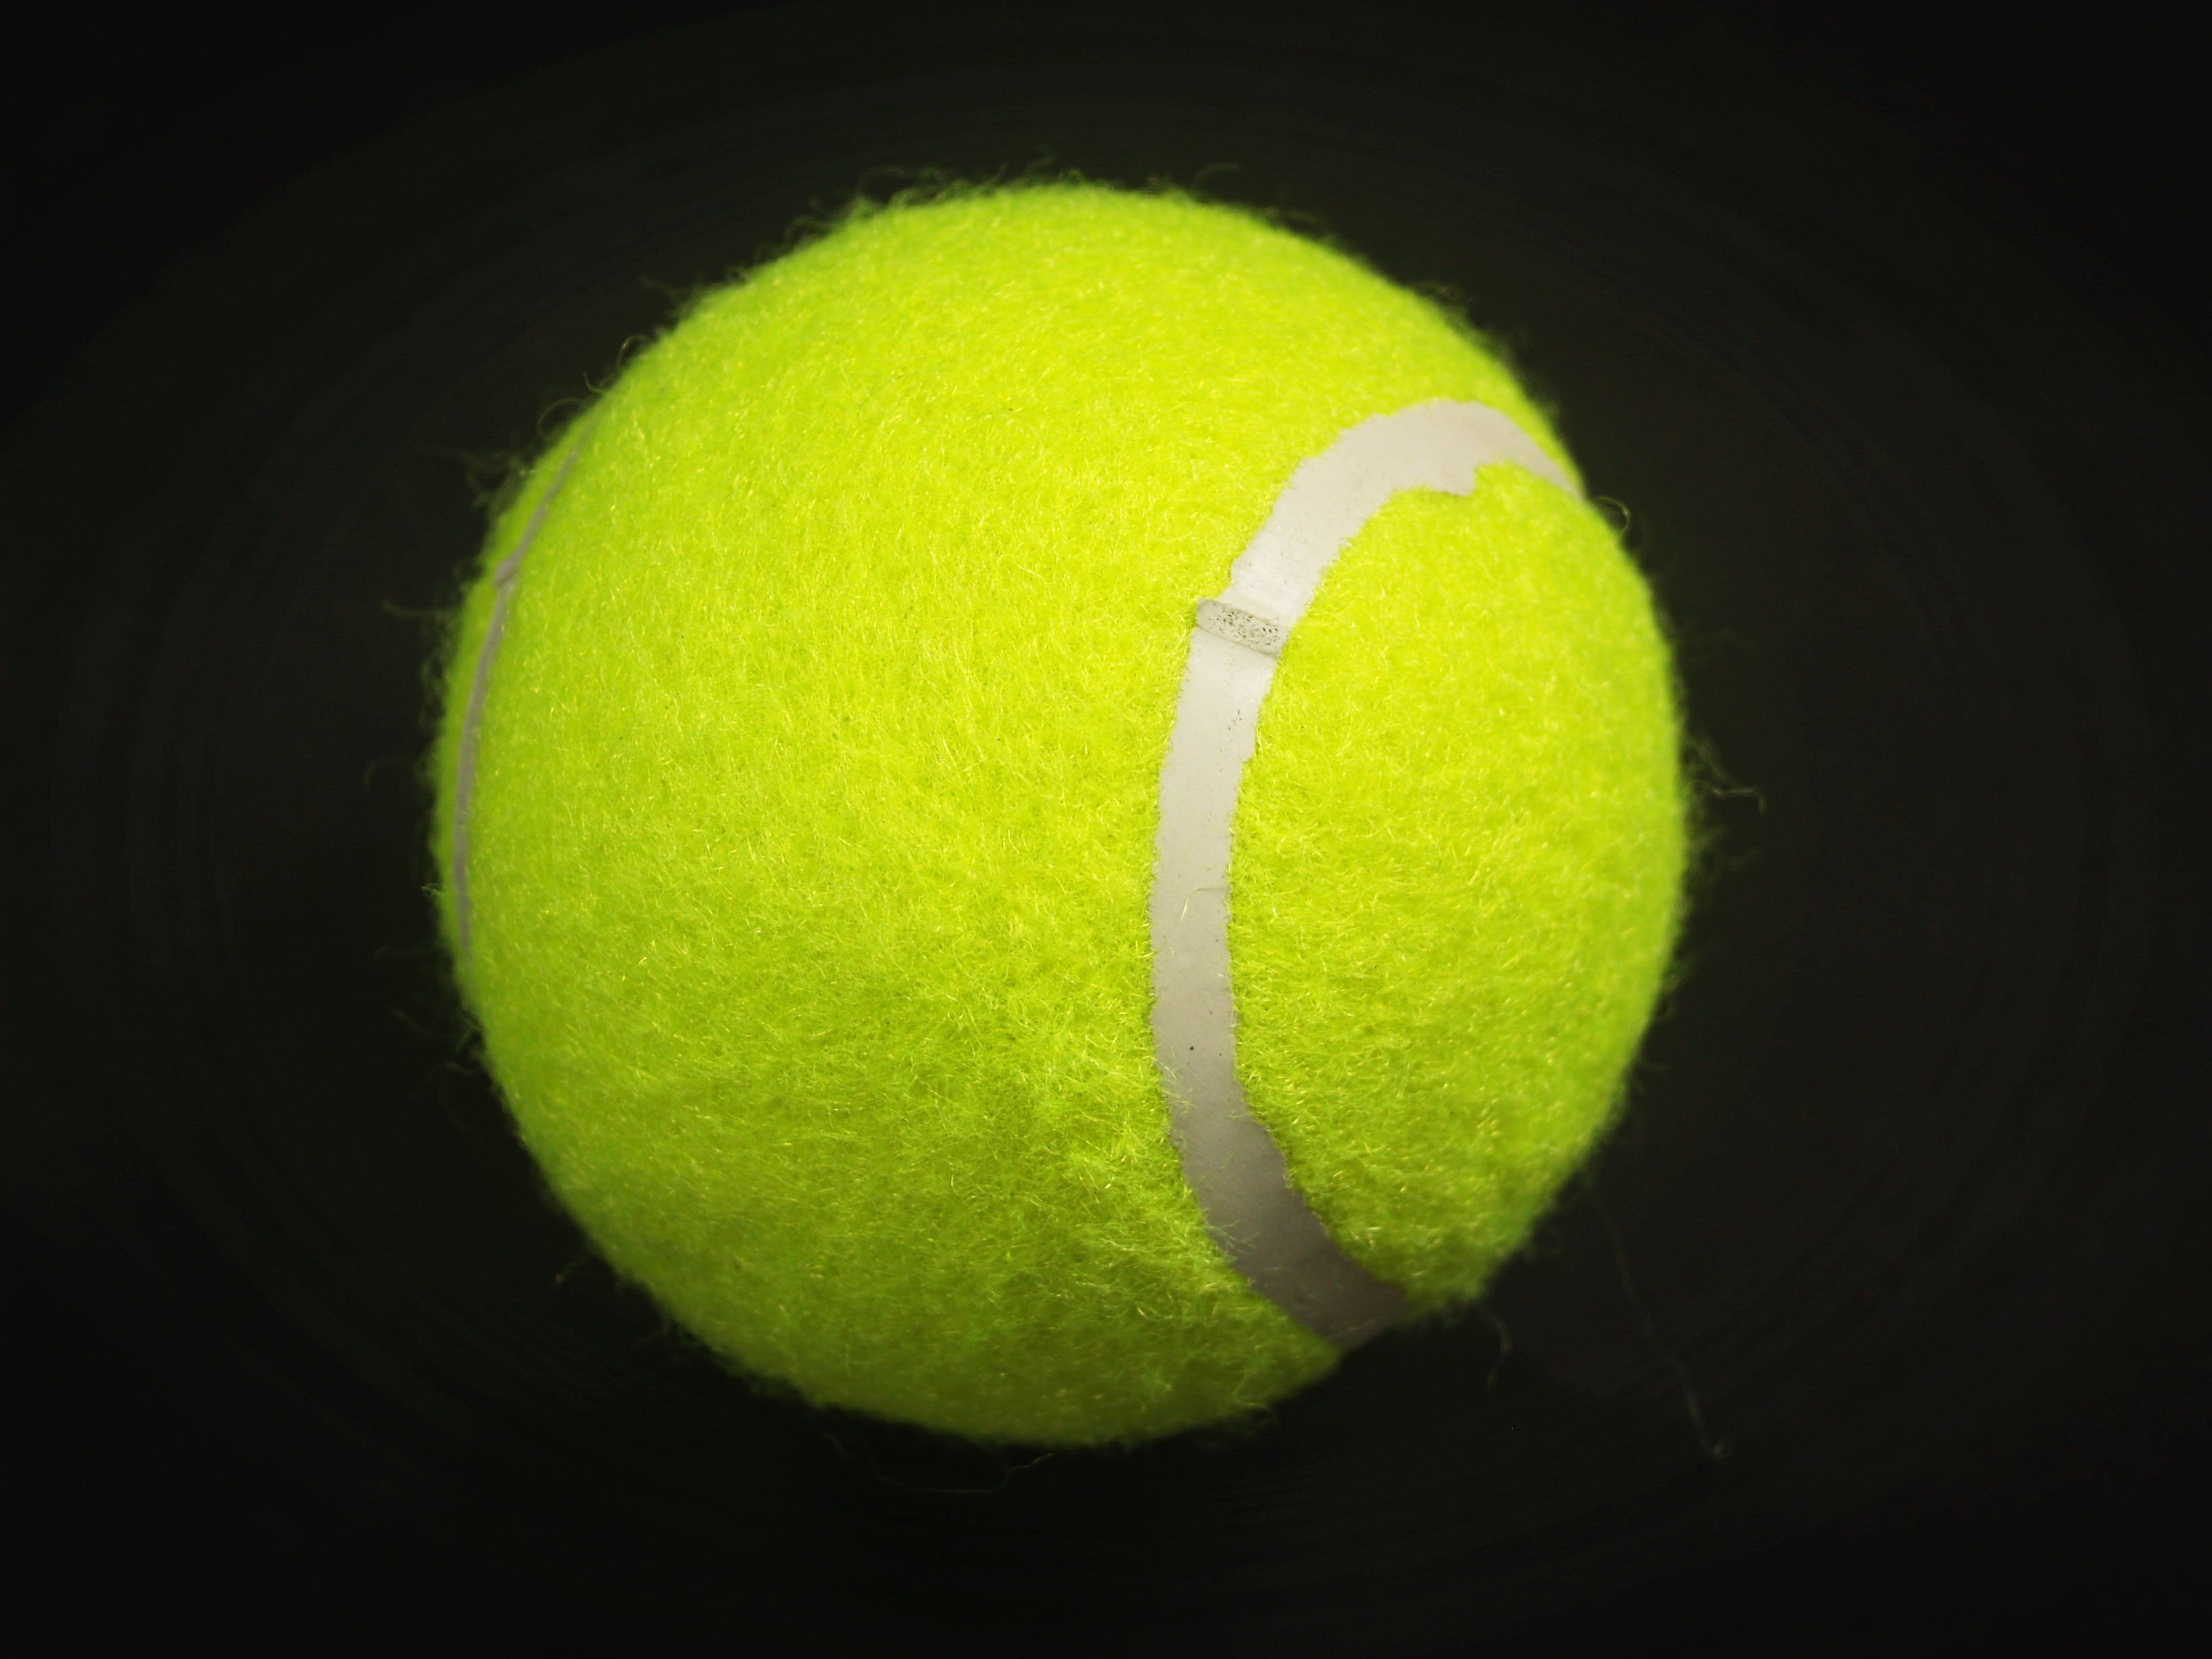 Green Tennis Ball Illustration